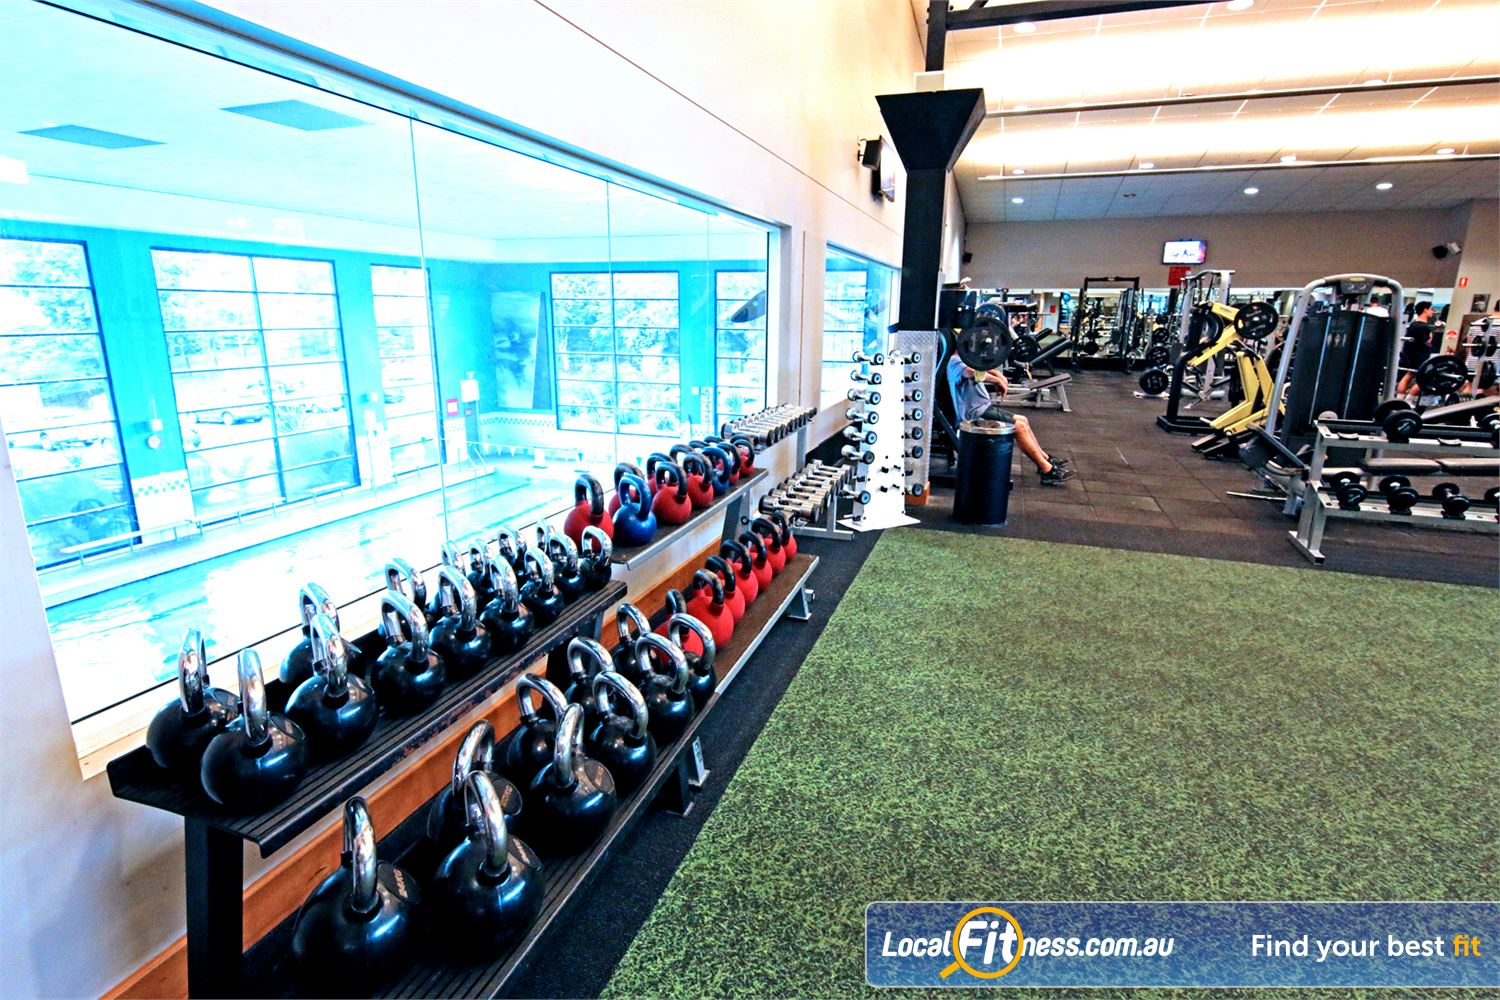 Fitness First Near Gumdale Get into freestyle and functional training with kettlebells, dumbbells and more.